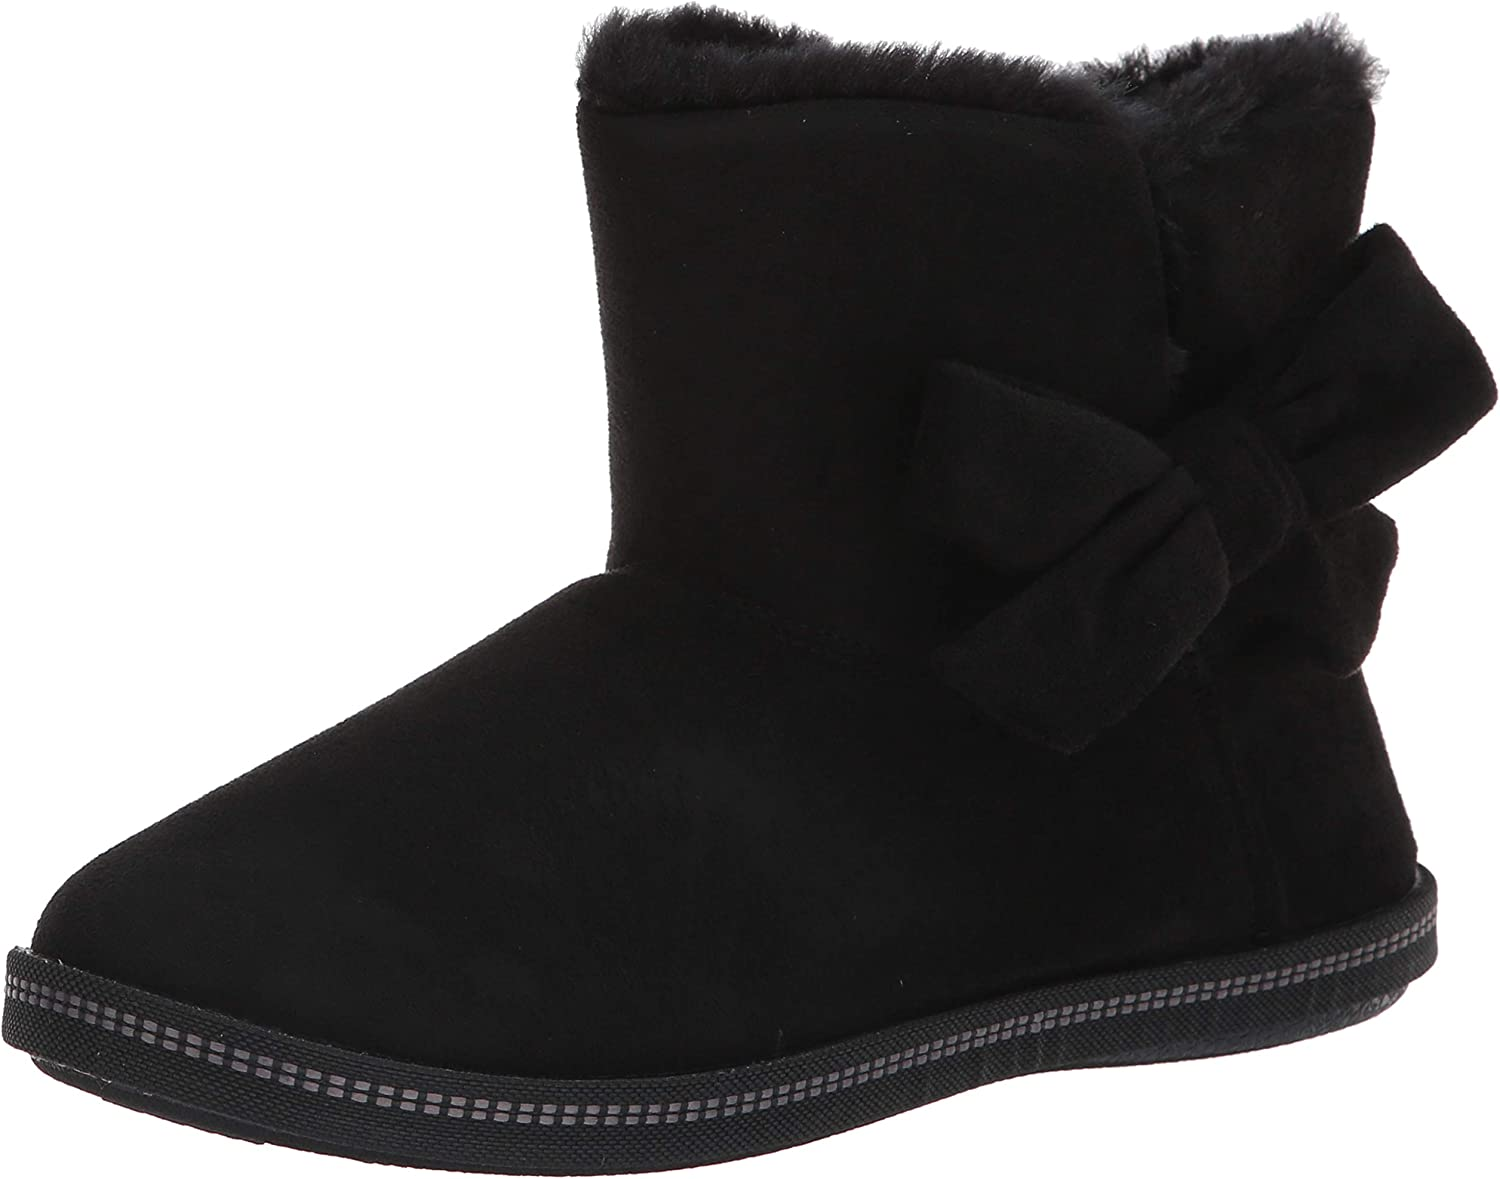 Skechers Today's only Women's Cozy Campfire-Microfiber Jacksonville Mall Slipper Boot with Bow